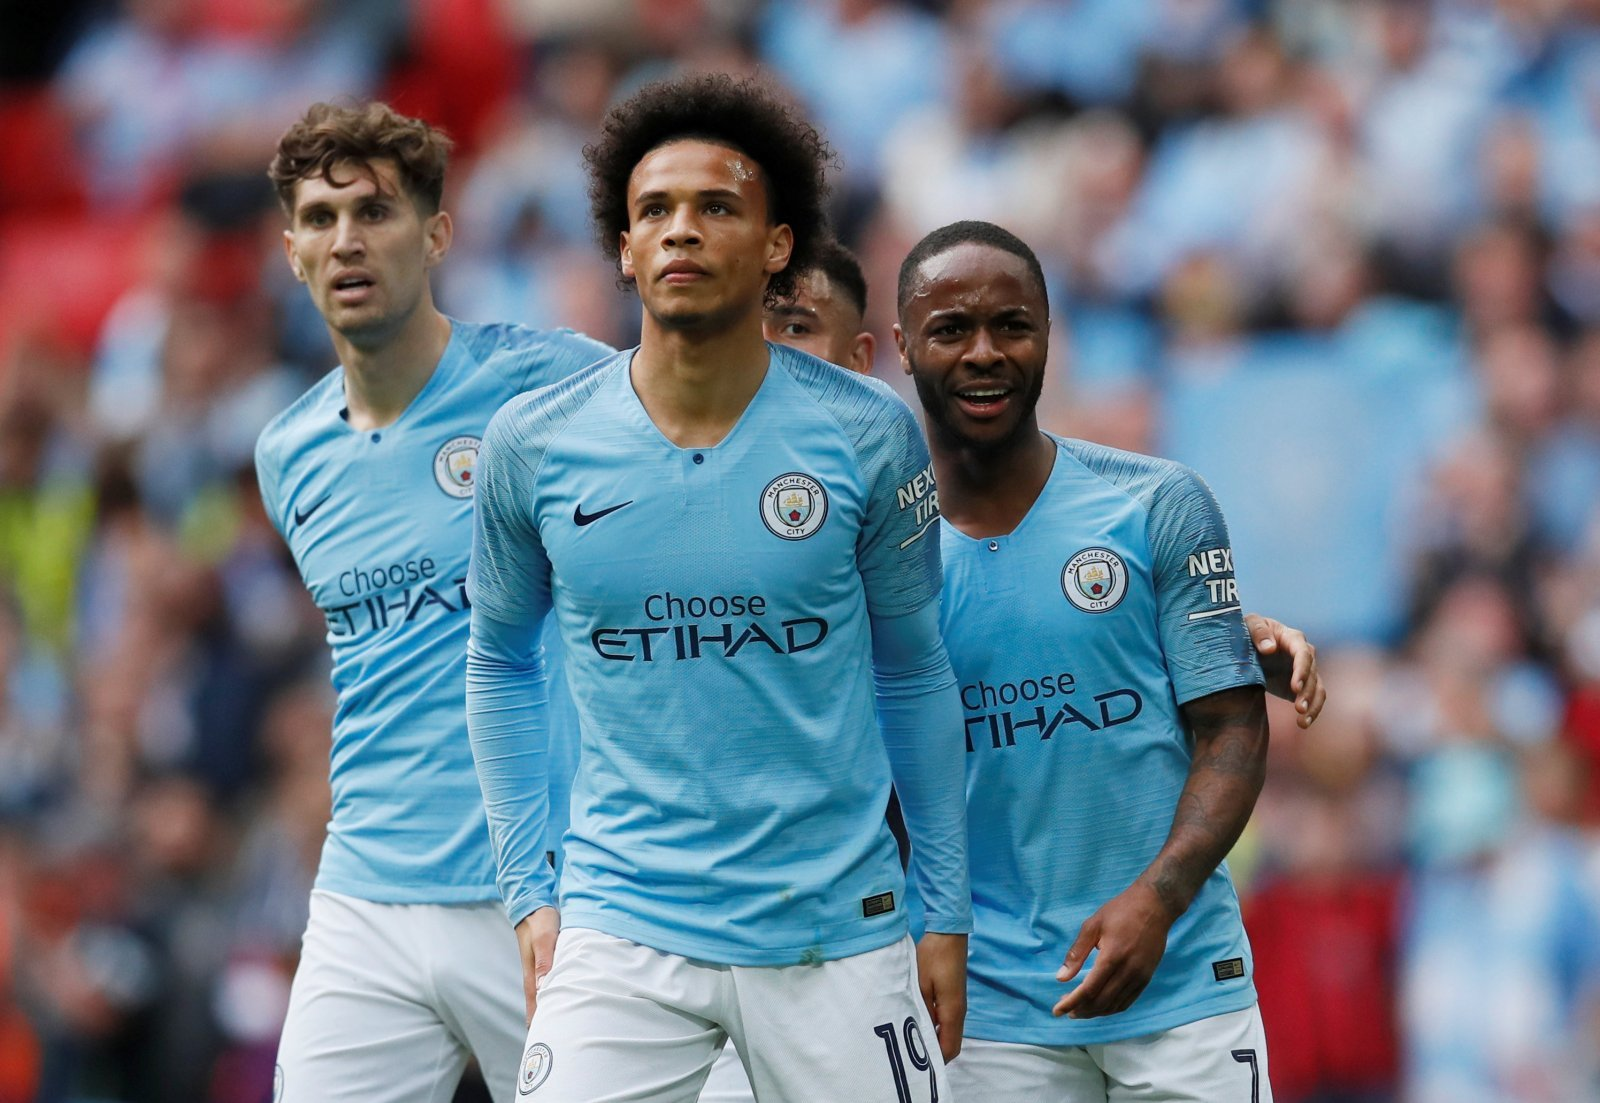 Manchester City: Leroy Sane has damaged his anterior cruciate ligament